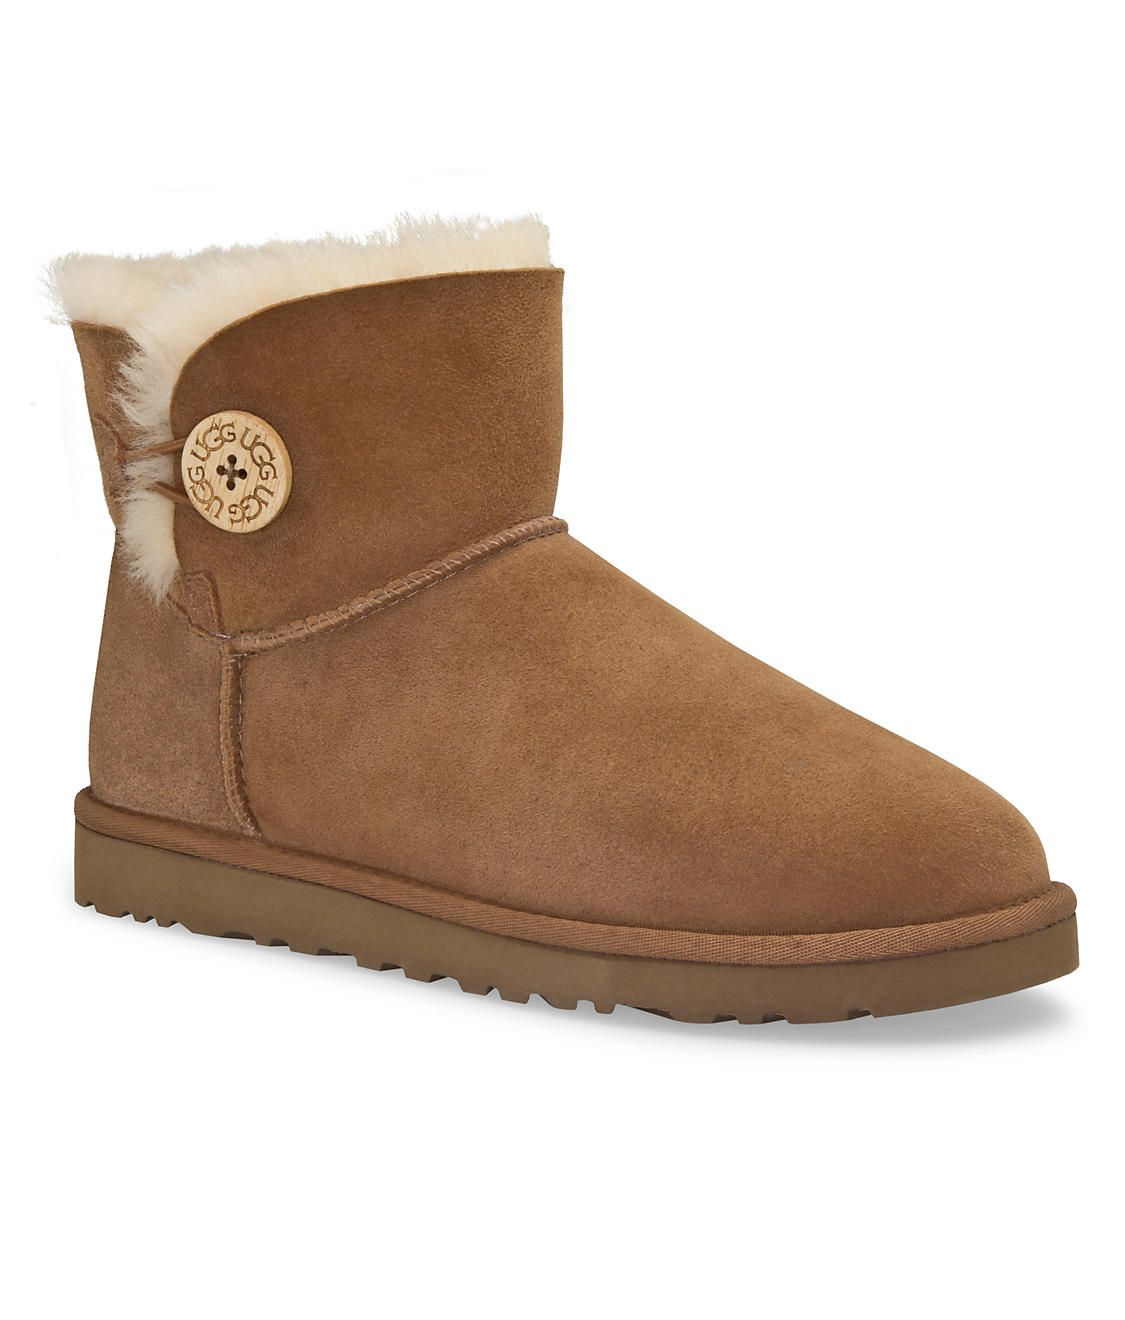 a8838f3dbb9 UGG Bailey Button Mini Boots | Bare Necessities (3352) | My Style ...